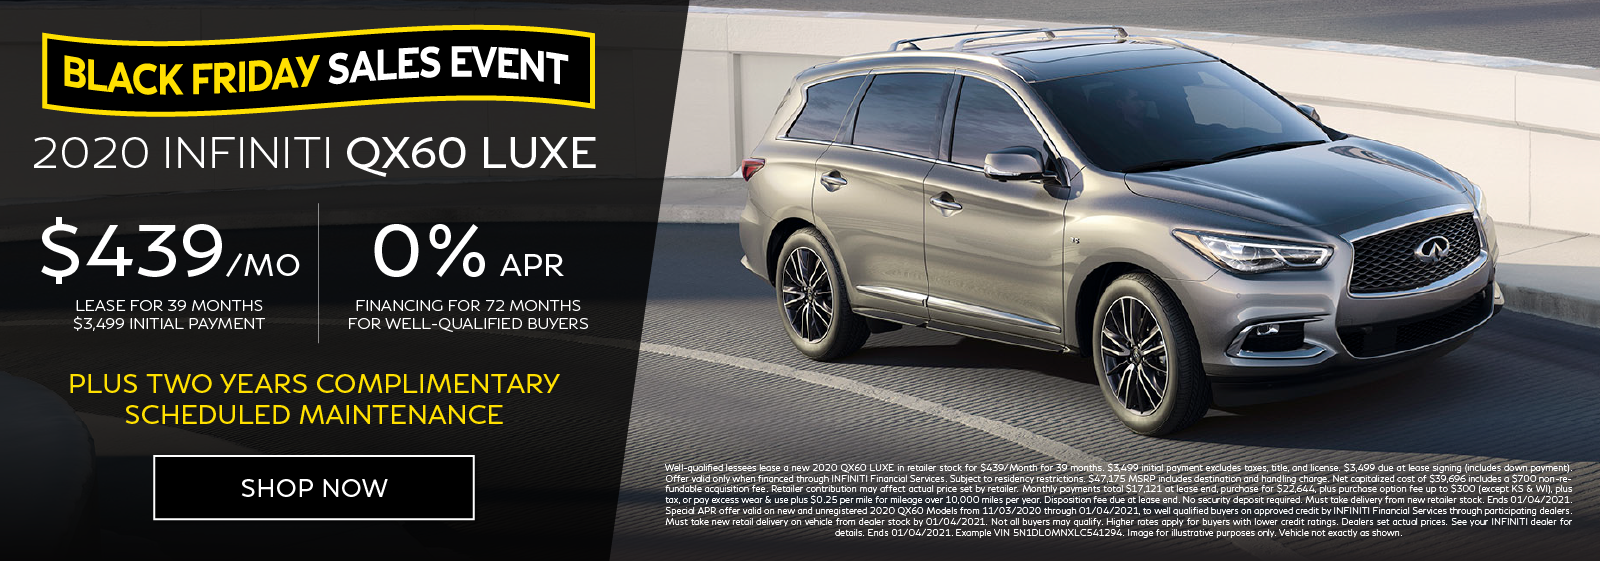 Well-qualified customers can lease a new 2020 QX60 LUXE for $439 per month for 39 months OR get 0% APR financing for 72 months. Click to shop now.